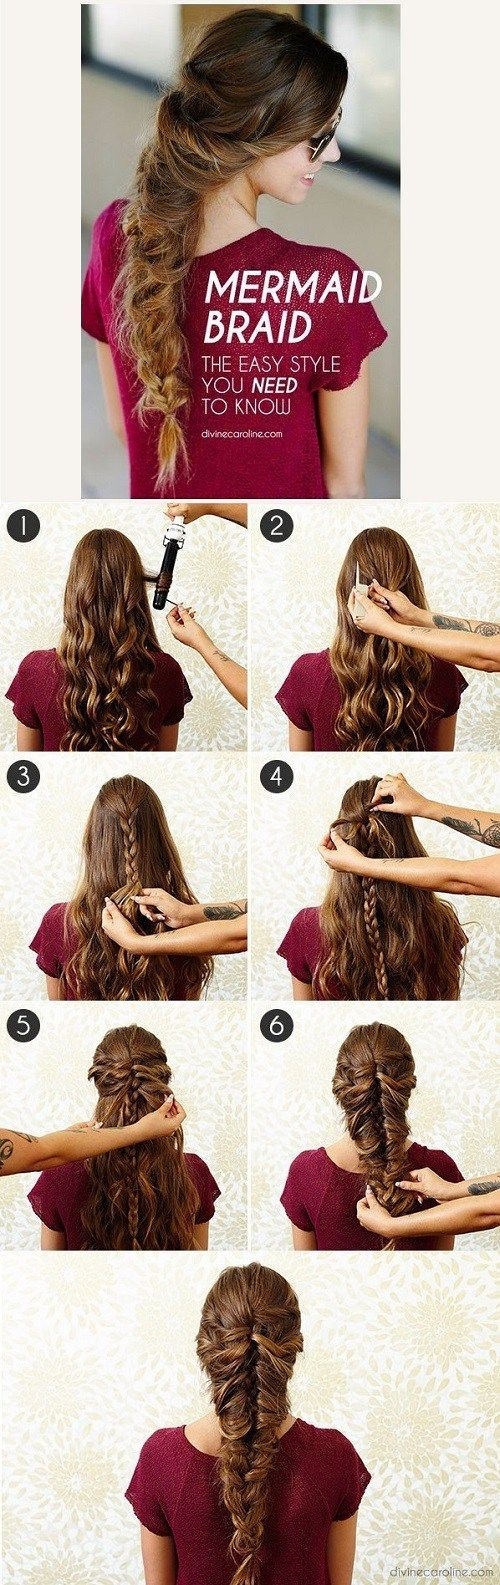 Hair Tutorials for Long Hair and Medium Length Hair - Mermaid Braid Step by Step Tutorial http://www.deal-shop.com/product/60-modern-twists-on-the-classic-hairstyle/